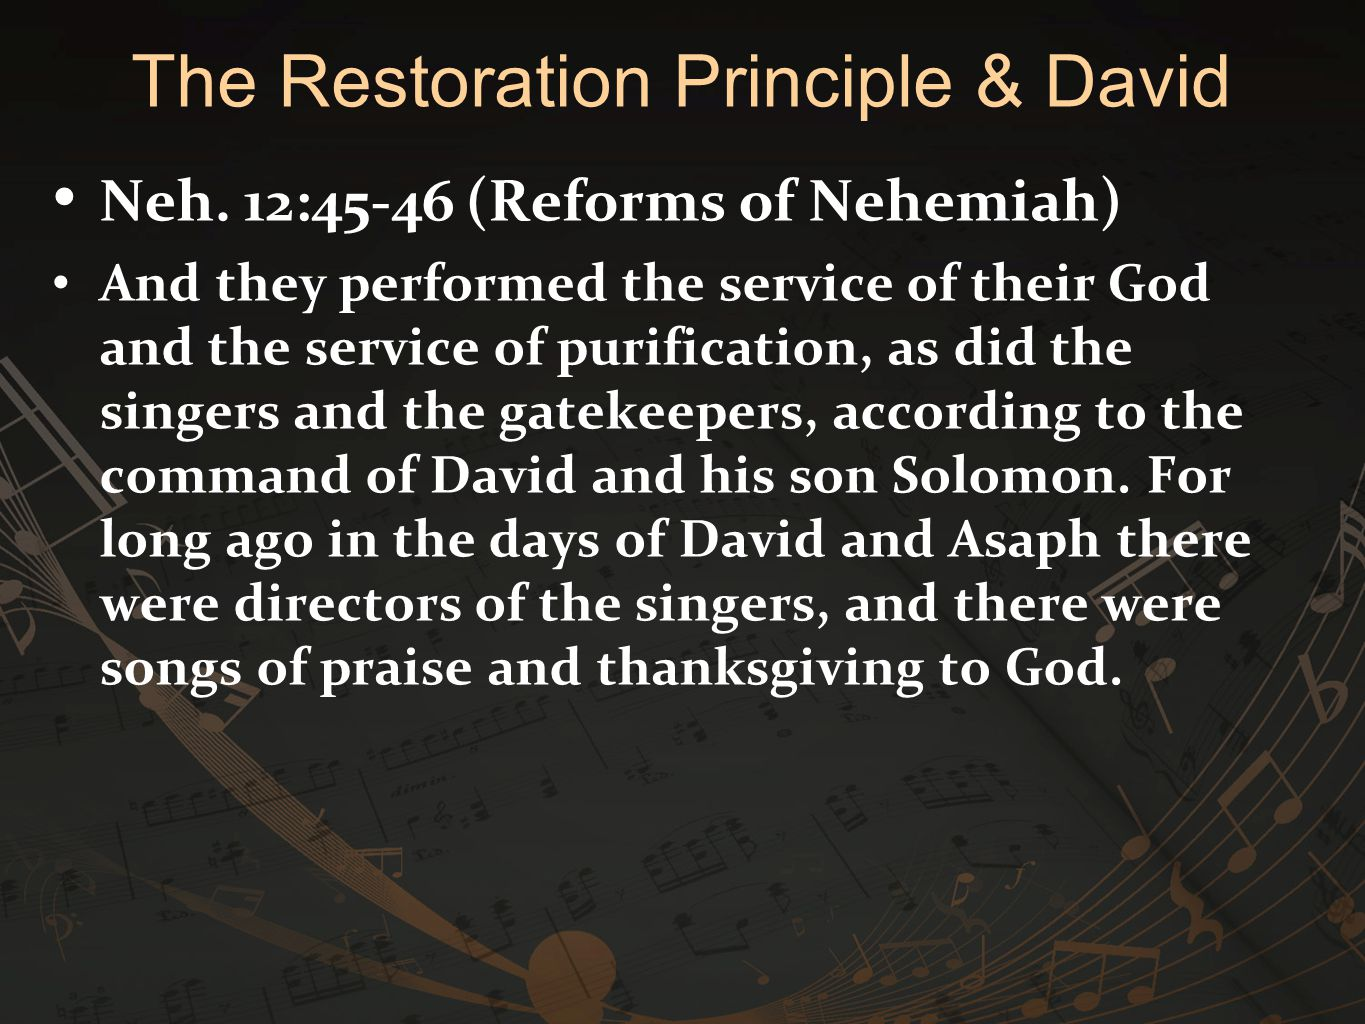 Neh. 12:45-46 (Reforms of Nehemiah) And they performed the service of their God and the service of purification, as did the singers and the gatekeeper